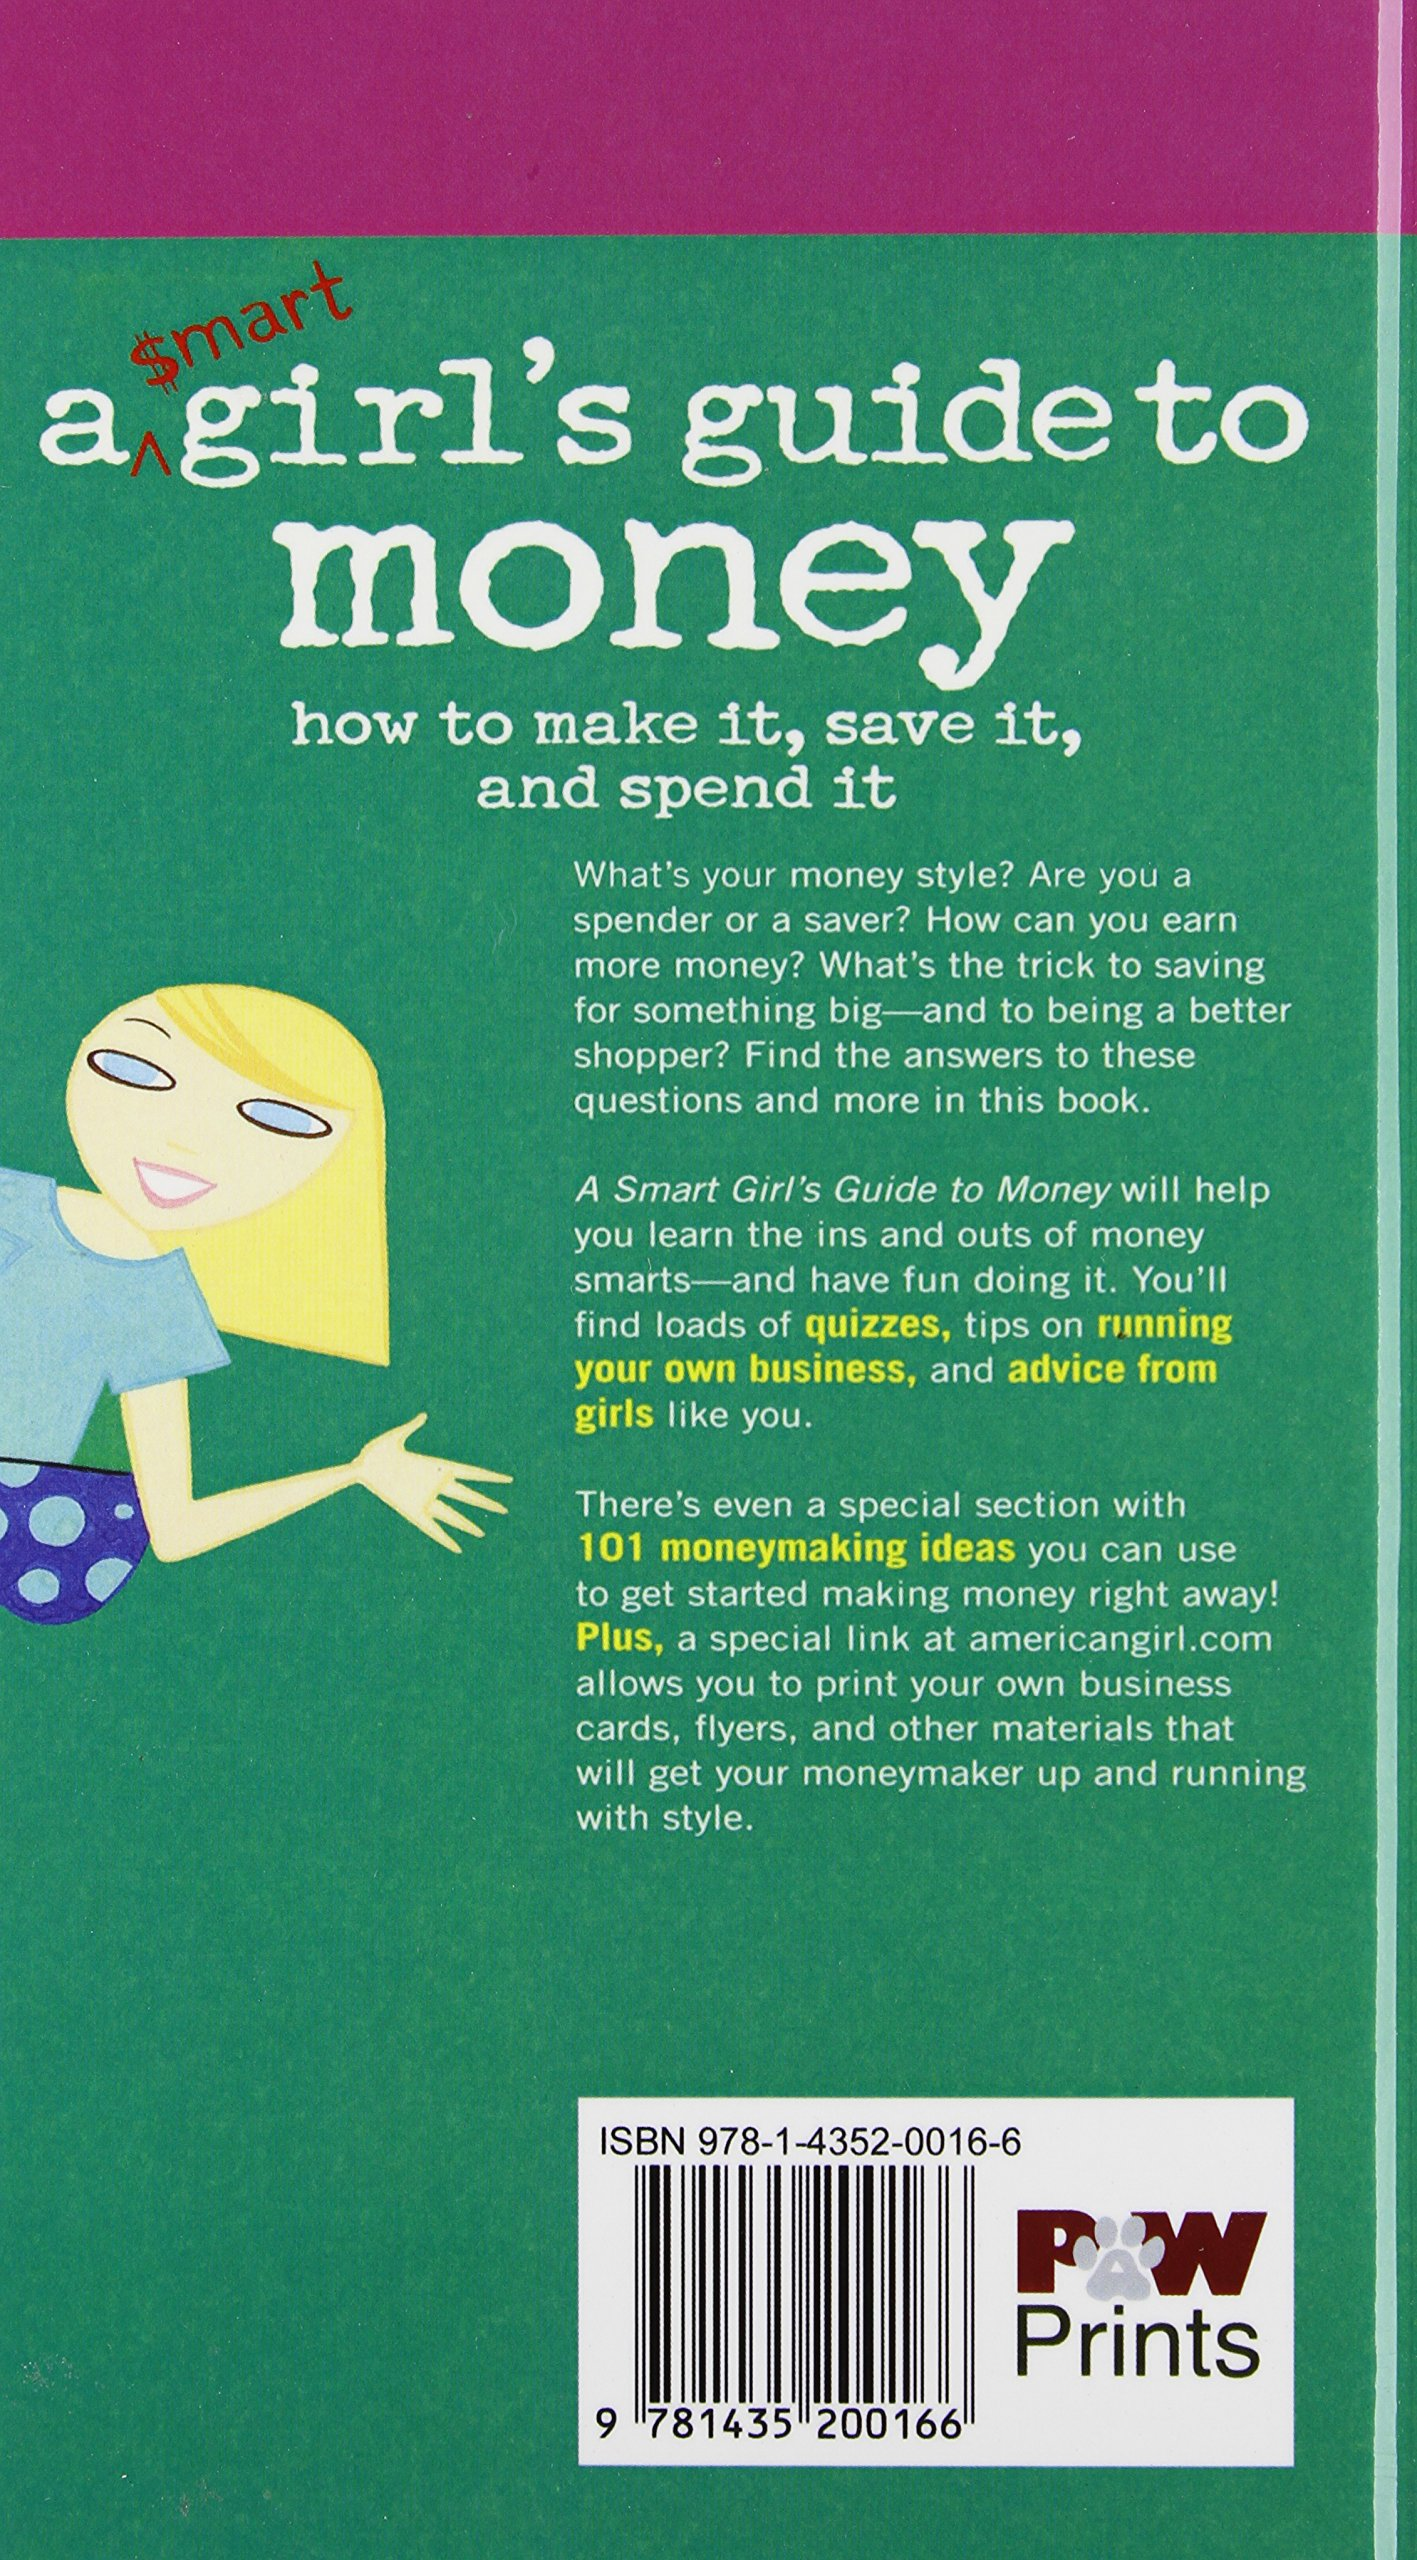 A smart girls guide to money how to make it save it and spend it a smart girls guide to money how to make it save it and spend it american girl library nancy holyoke ali douglass 9781435200166 amazon books reheart Choice Image